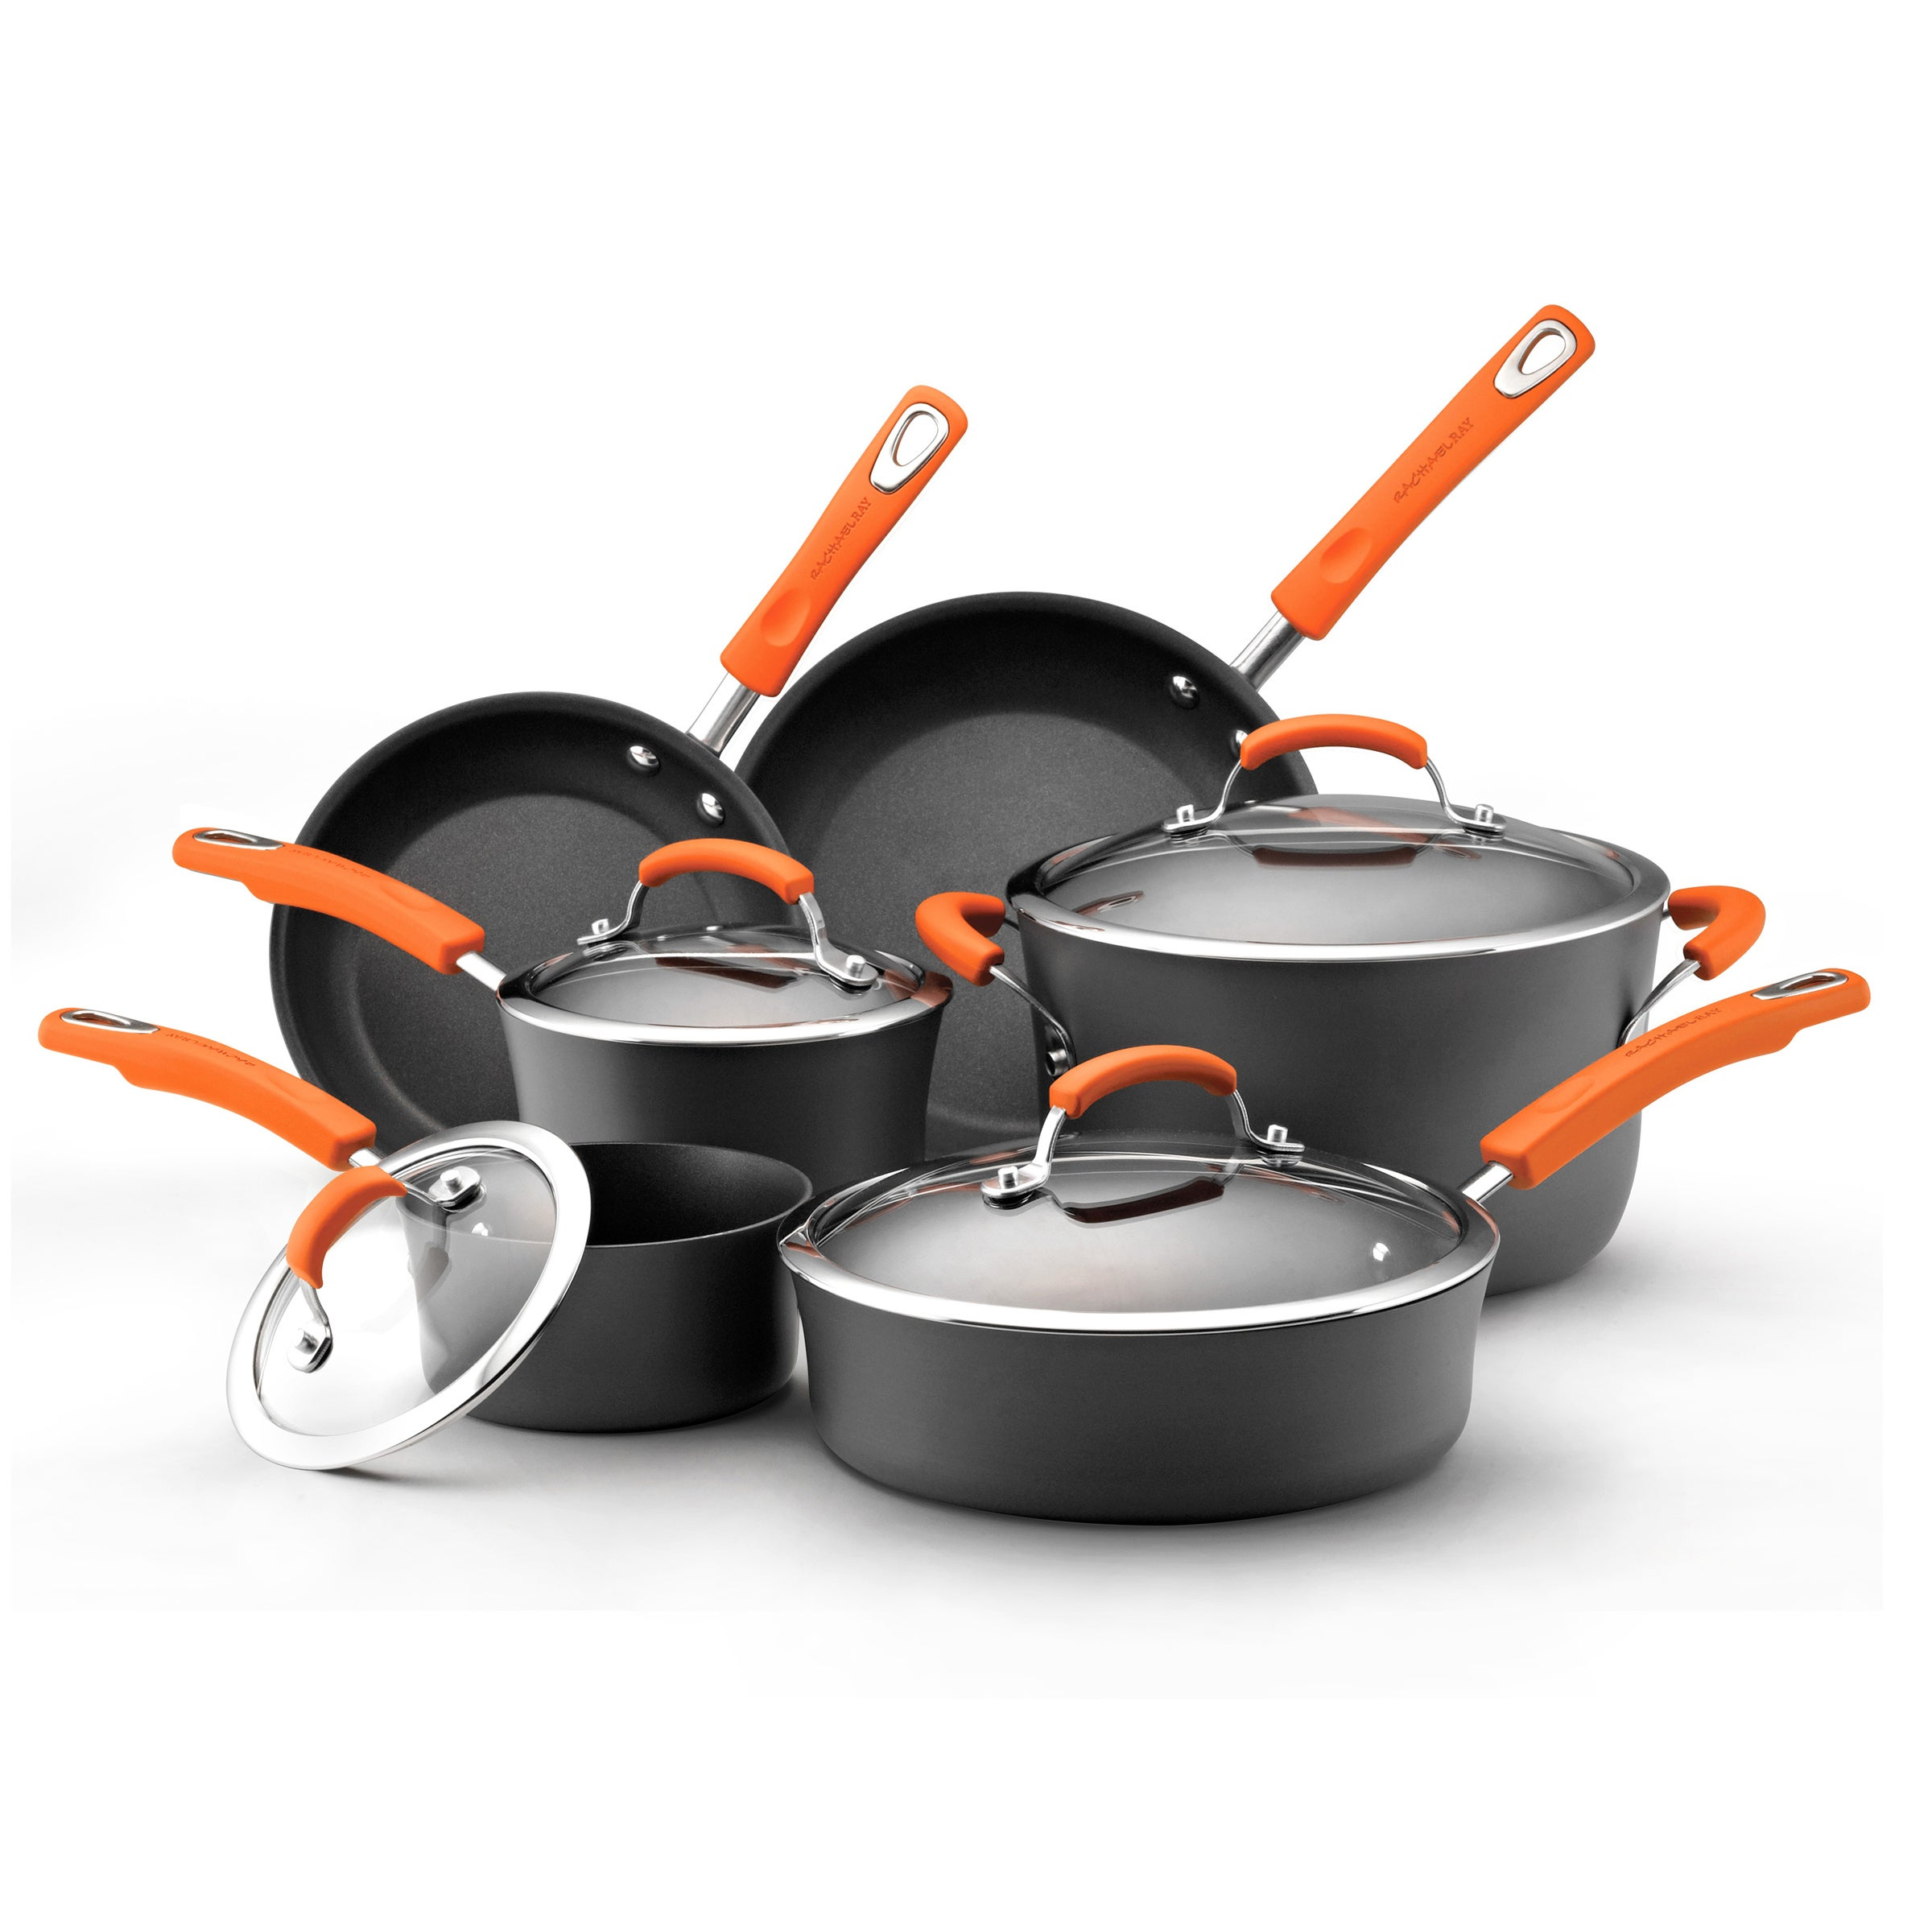 Rachael Ray II Hard-anodized Nonstick 10-piece Cookware S...